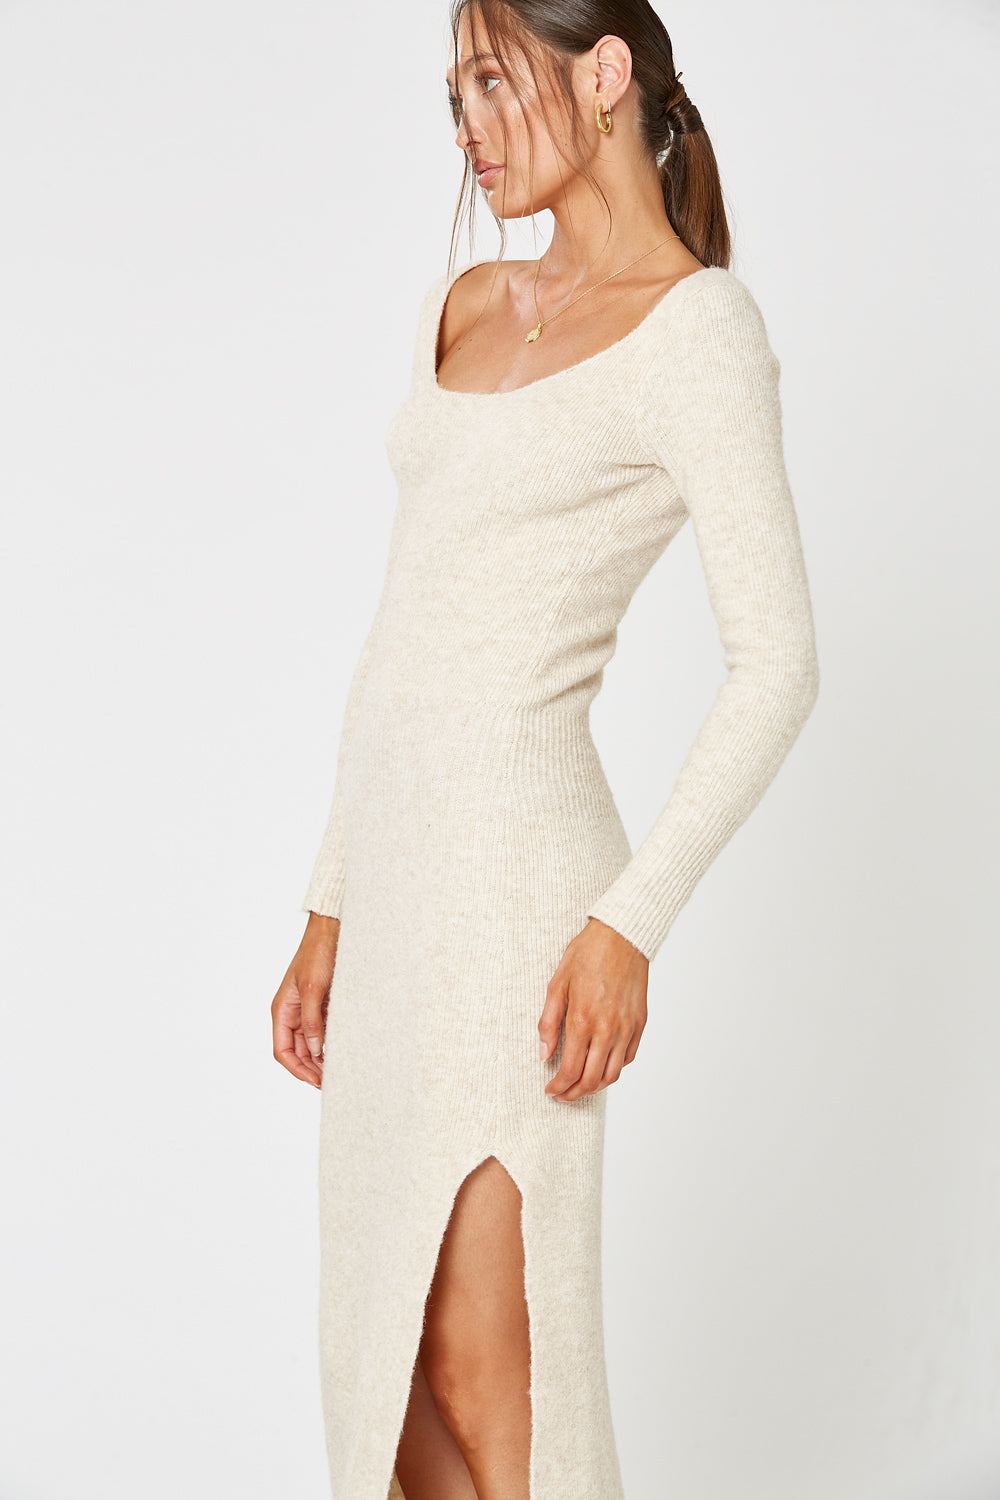 SONATA KNIT DRESS OATMEAL